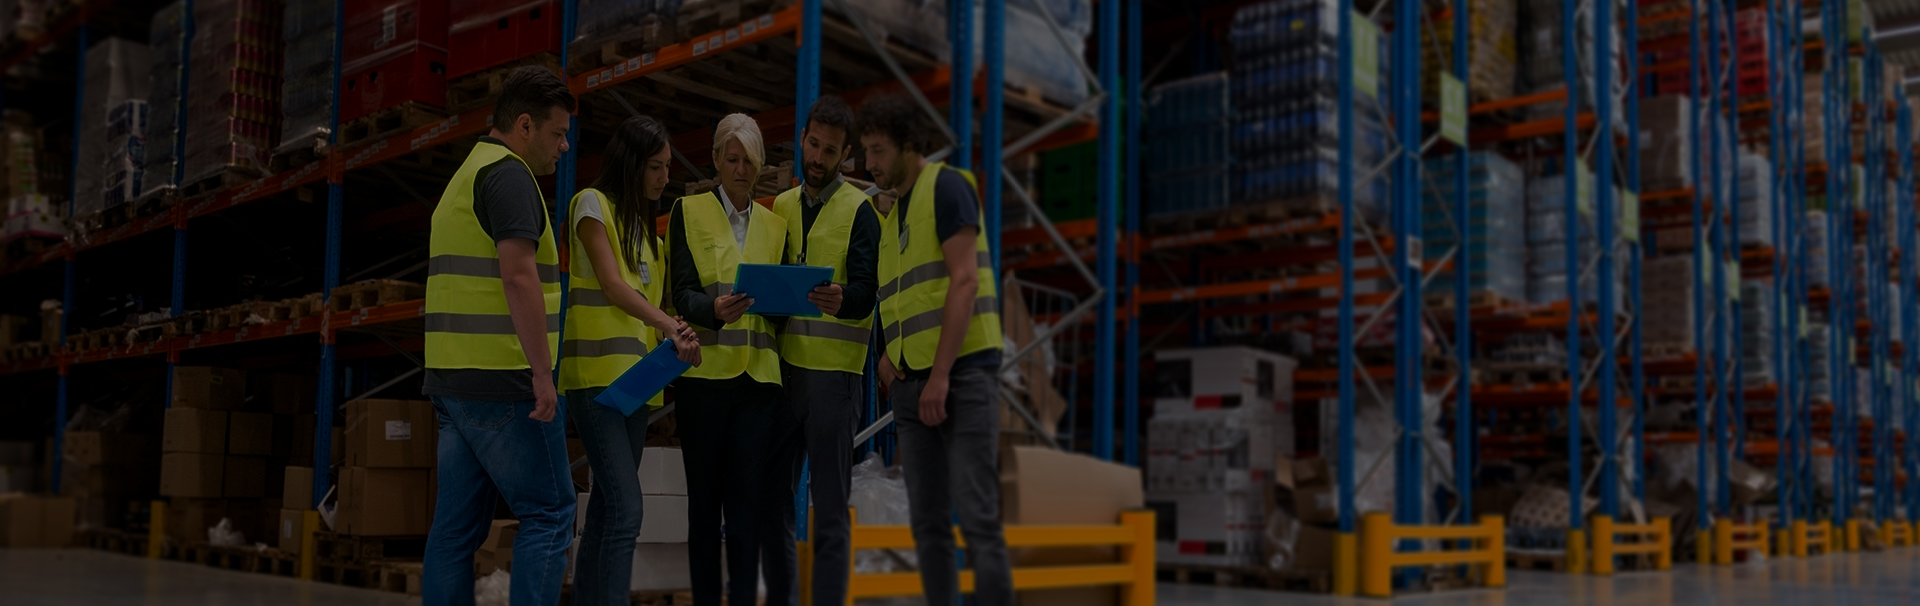 Softeon   Innovative Supply Chain Management Solutions